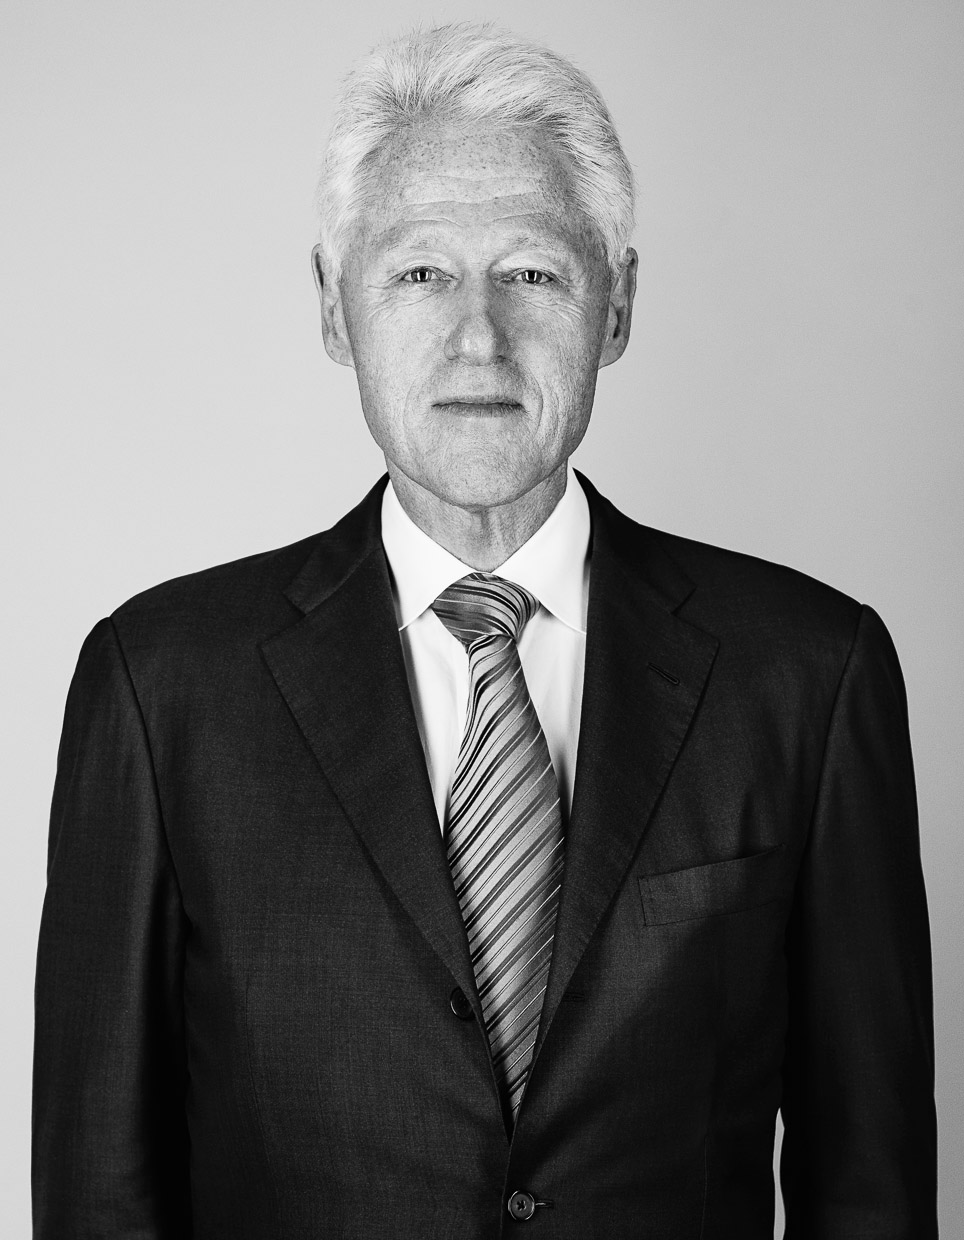 BillClinton-8